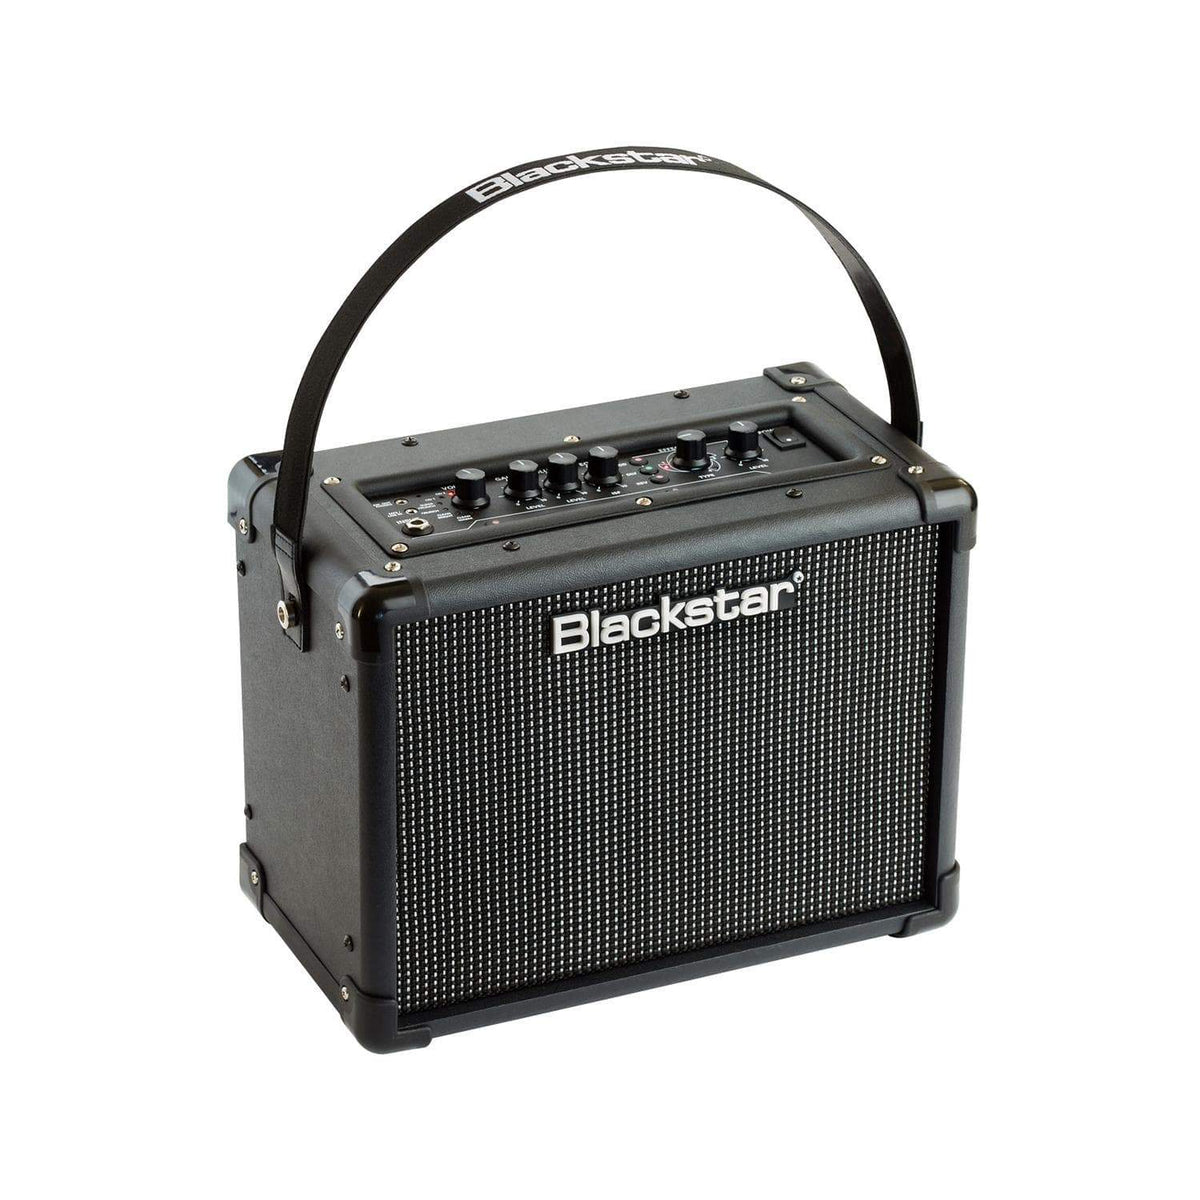 BlackStar String Instruments Blackstar ID:Core 10 V2 Stereo Combo Amp with FX